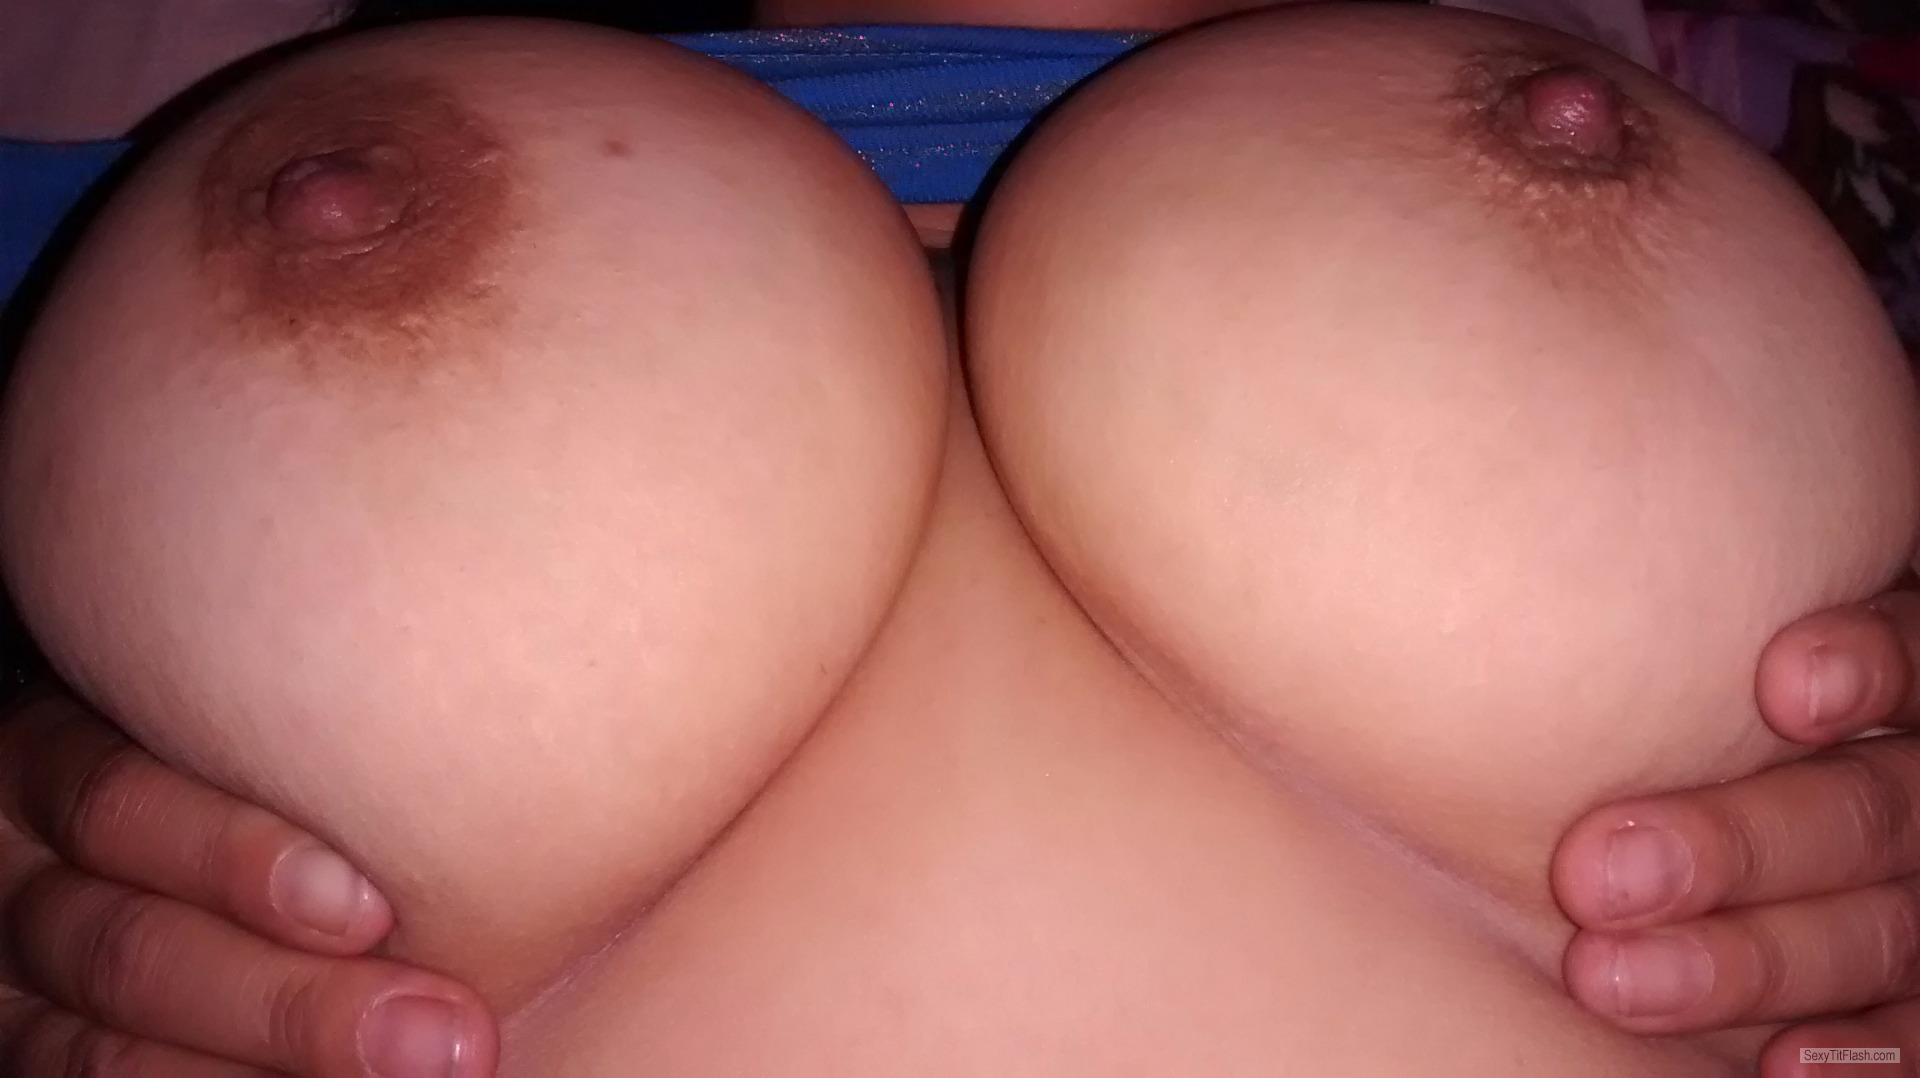 Tit Flash: Girlfriend's Very Small Tits - Topless My GF DDD's from United States